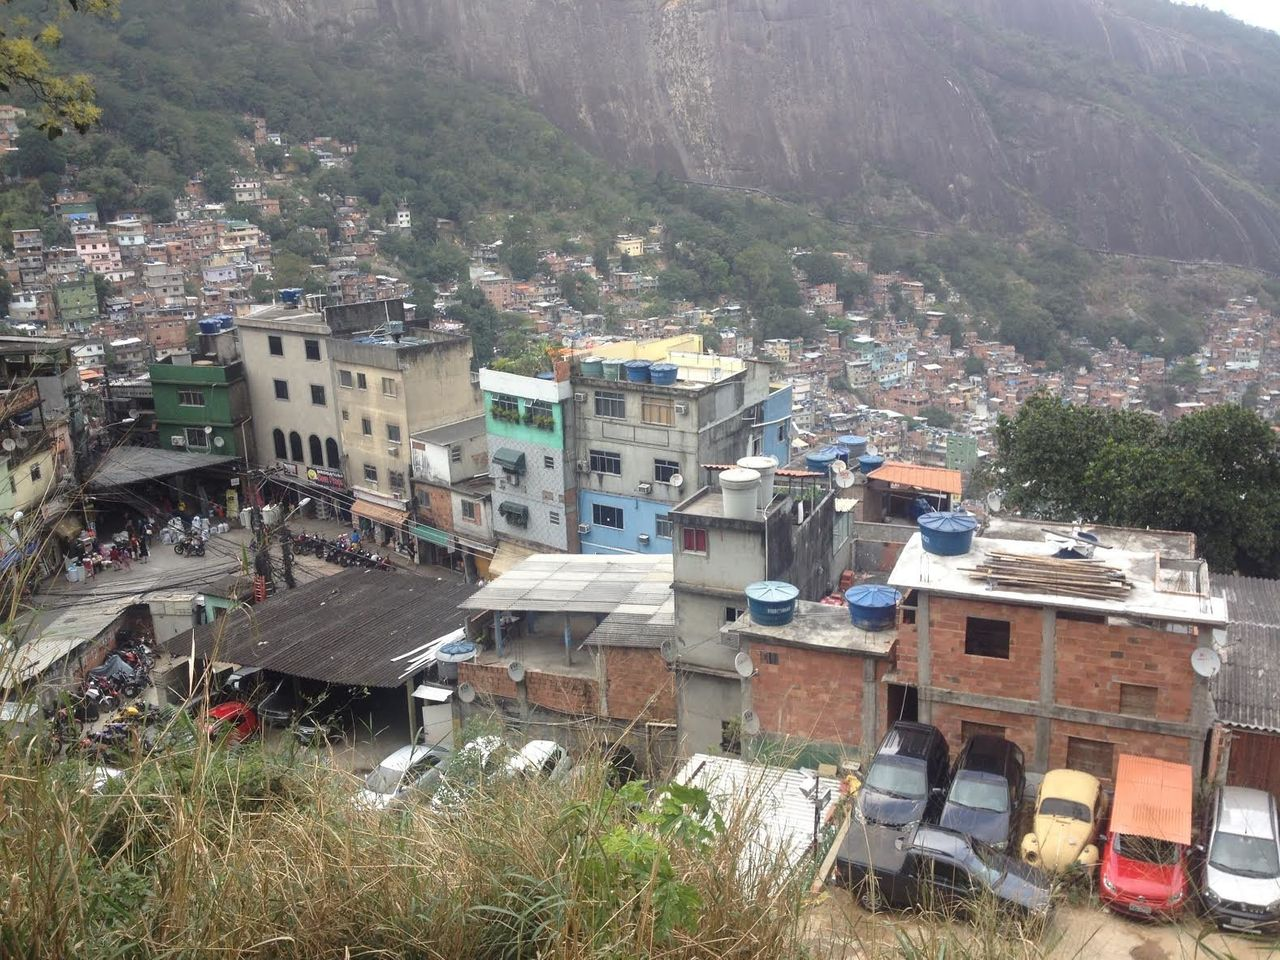 Rocinha residents fought off a cable car project in their community, arguing the money would be better spent on sanitation, education and health services.